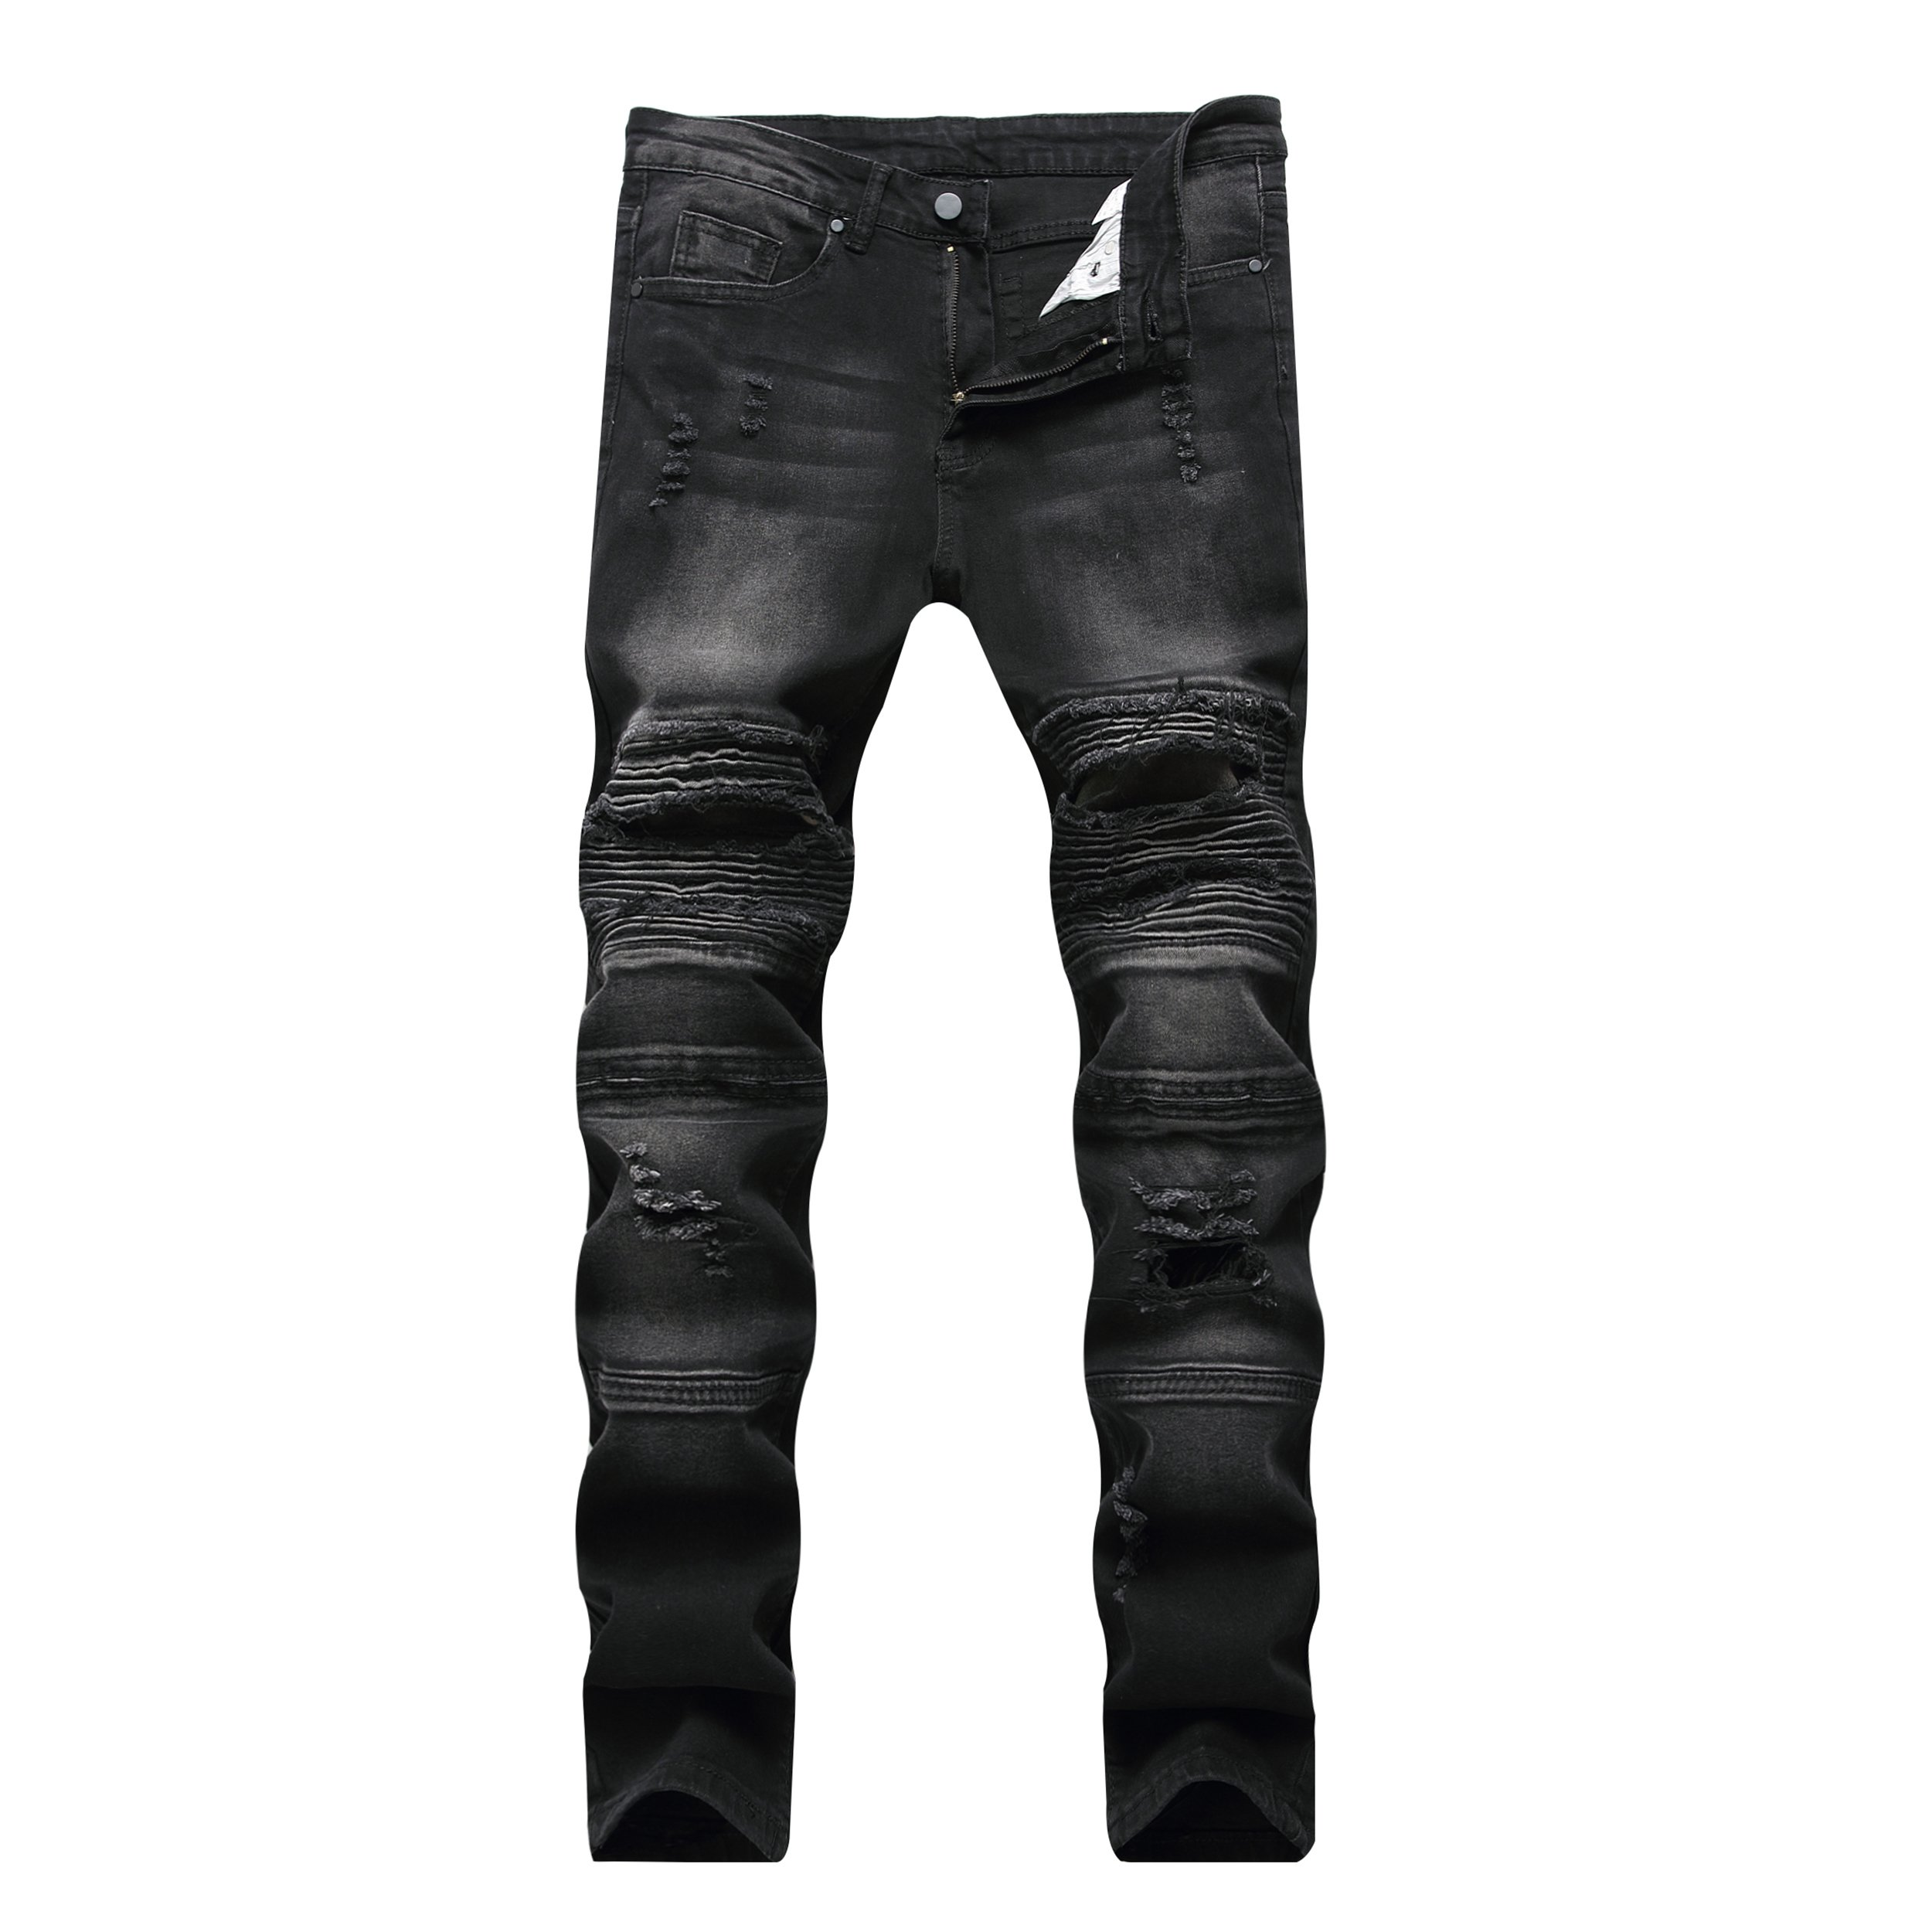 Liuhond Skinny Fashion Men's Ripped Straight Holes Hip Hop Biker Stretchy Jeans (32Wx31L, Black)